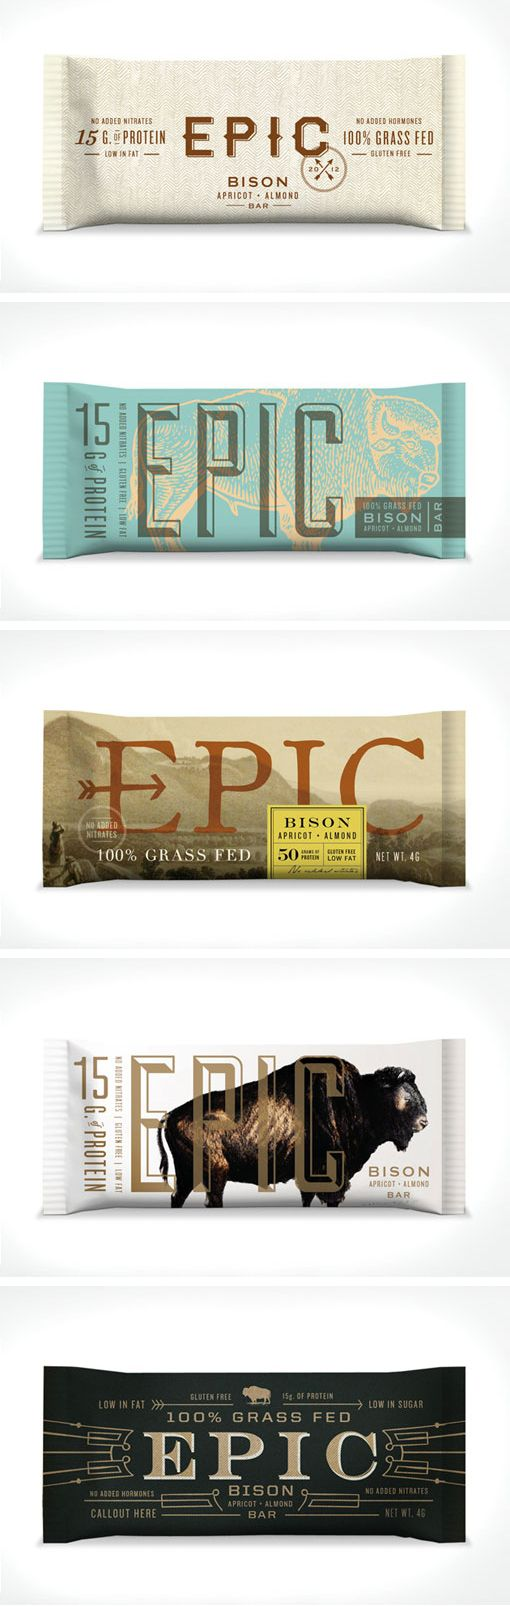 Epic protein bar | Make and Matter